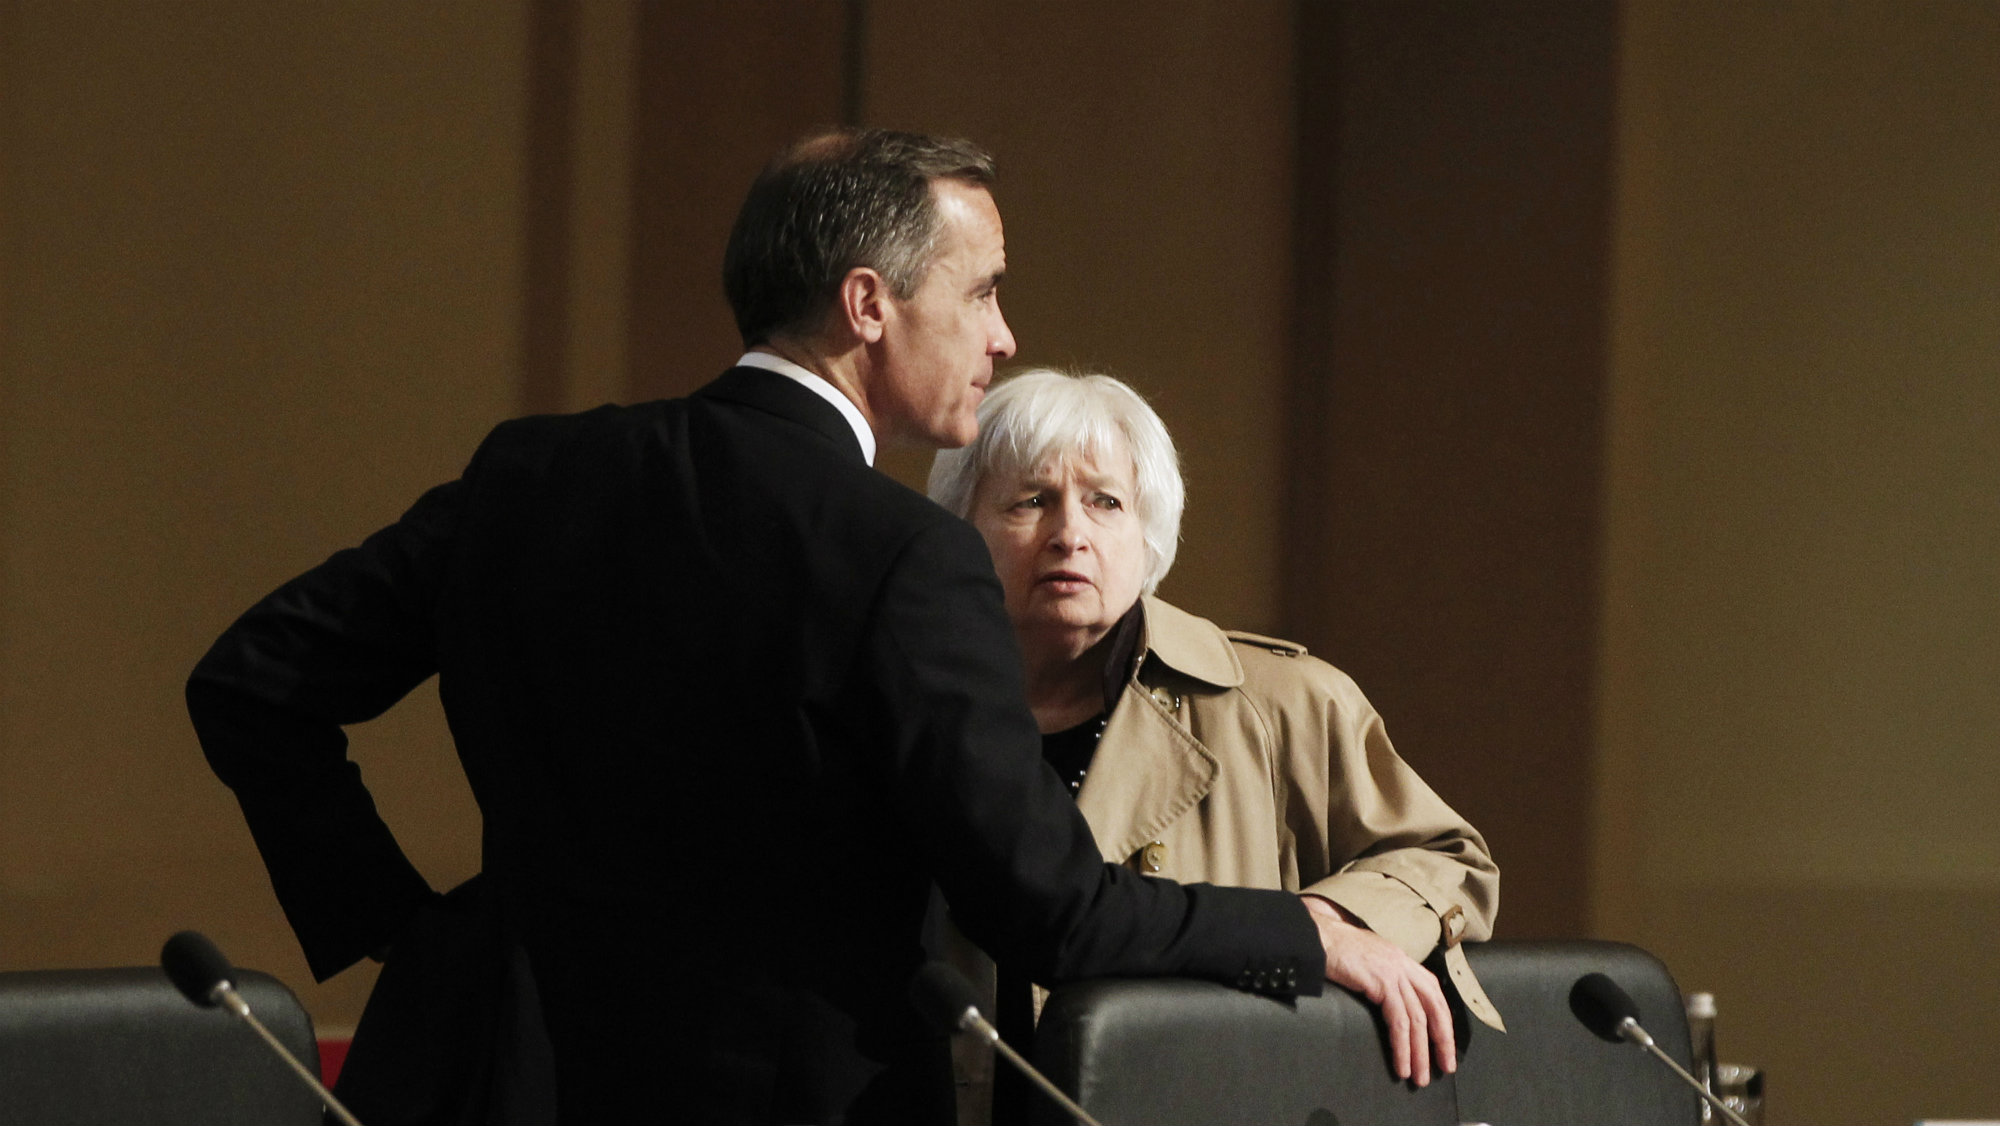 U.S. Federal Reserve Board Chair Janet Yellen talks with Mark Carney, Governor of the Bank of England, during a G20 finance ministers and central bank governors.